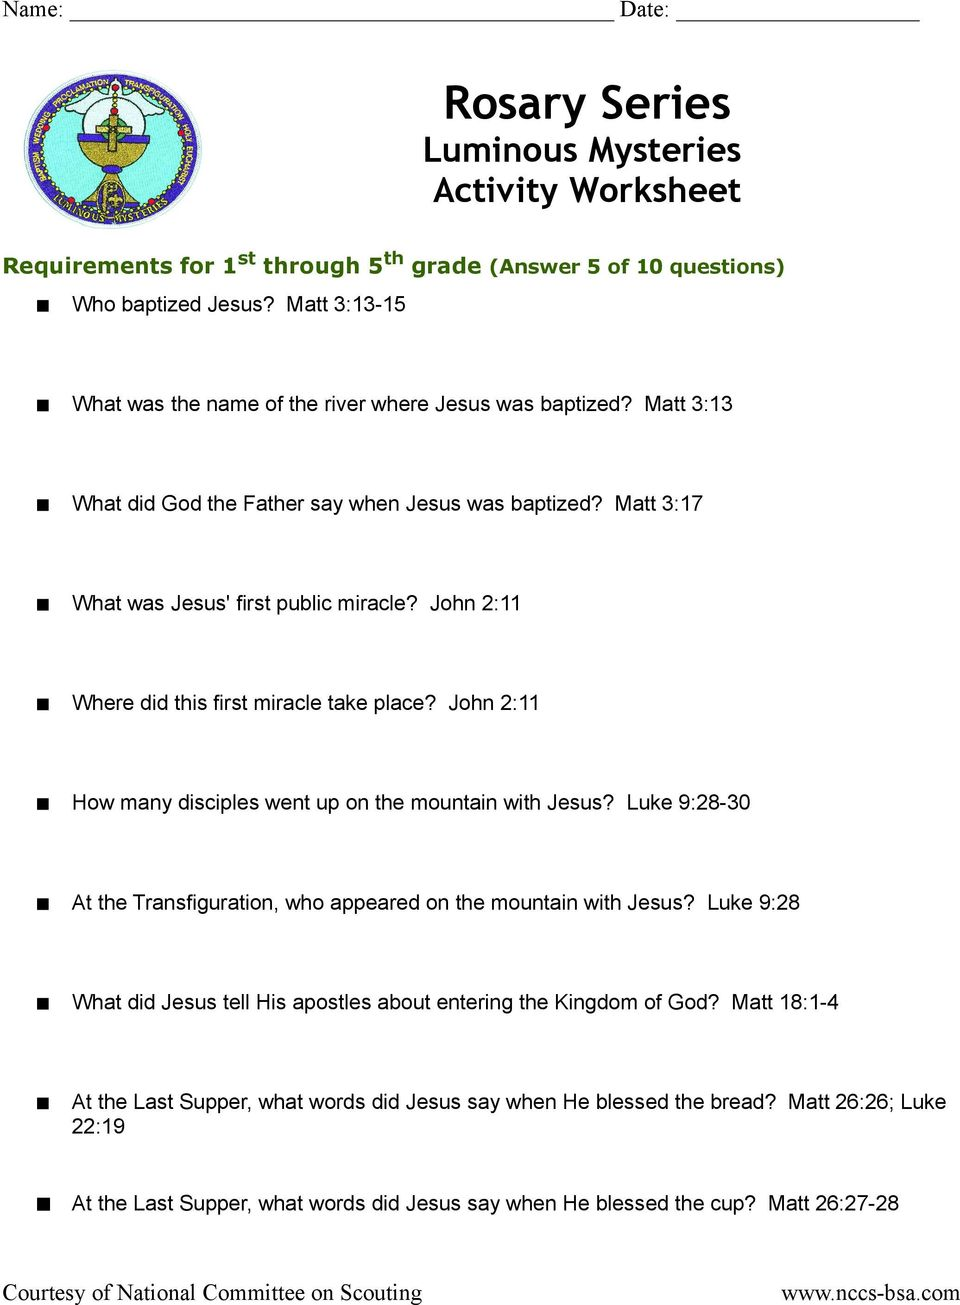 hight resolution of These Worksheets Can be Used Individually or for Group Instruction.  Worksheets are Broken Out by Ages or Grades if Appropriate - PDF Free  Download